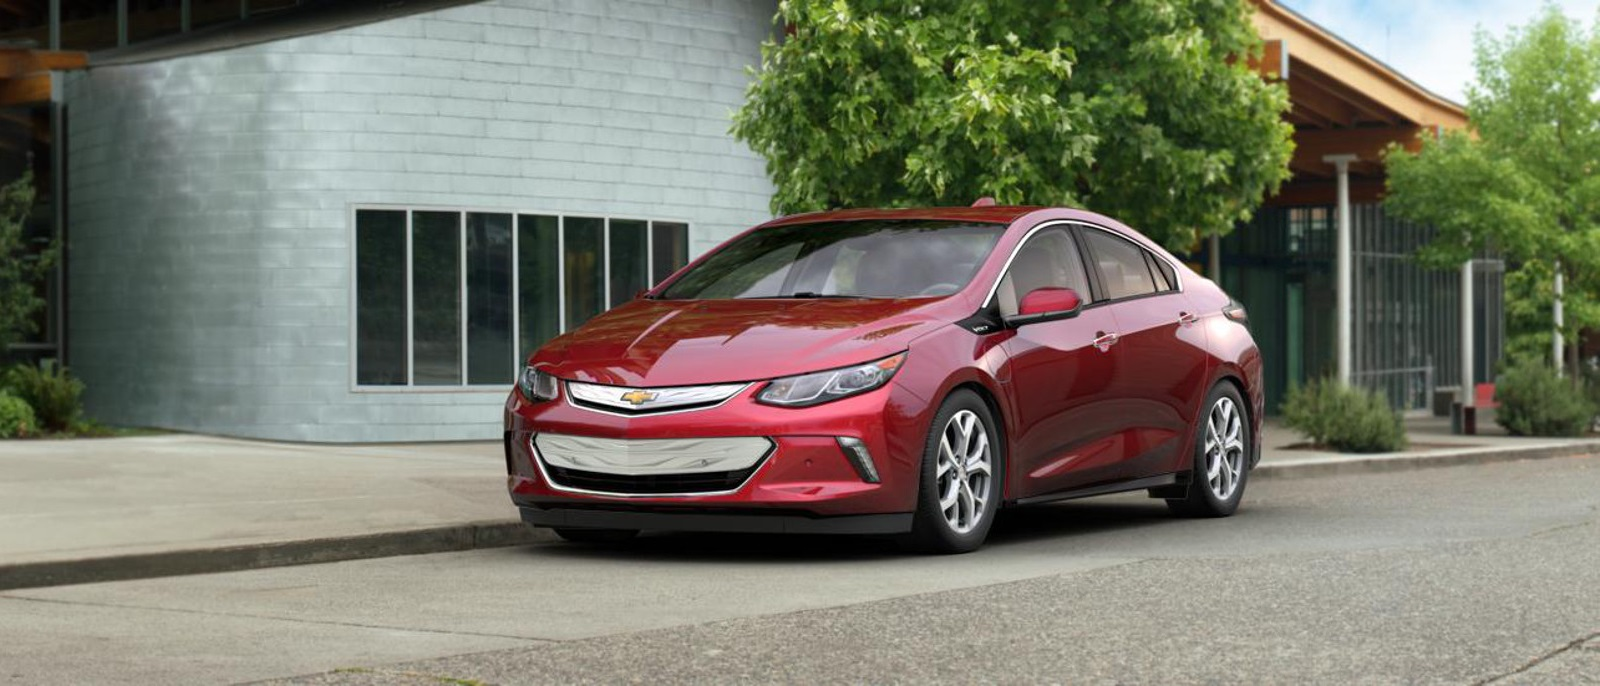 2017 Chevy Volt Red